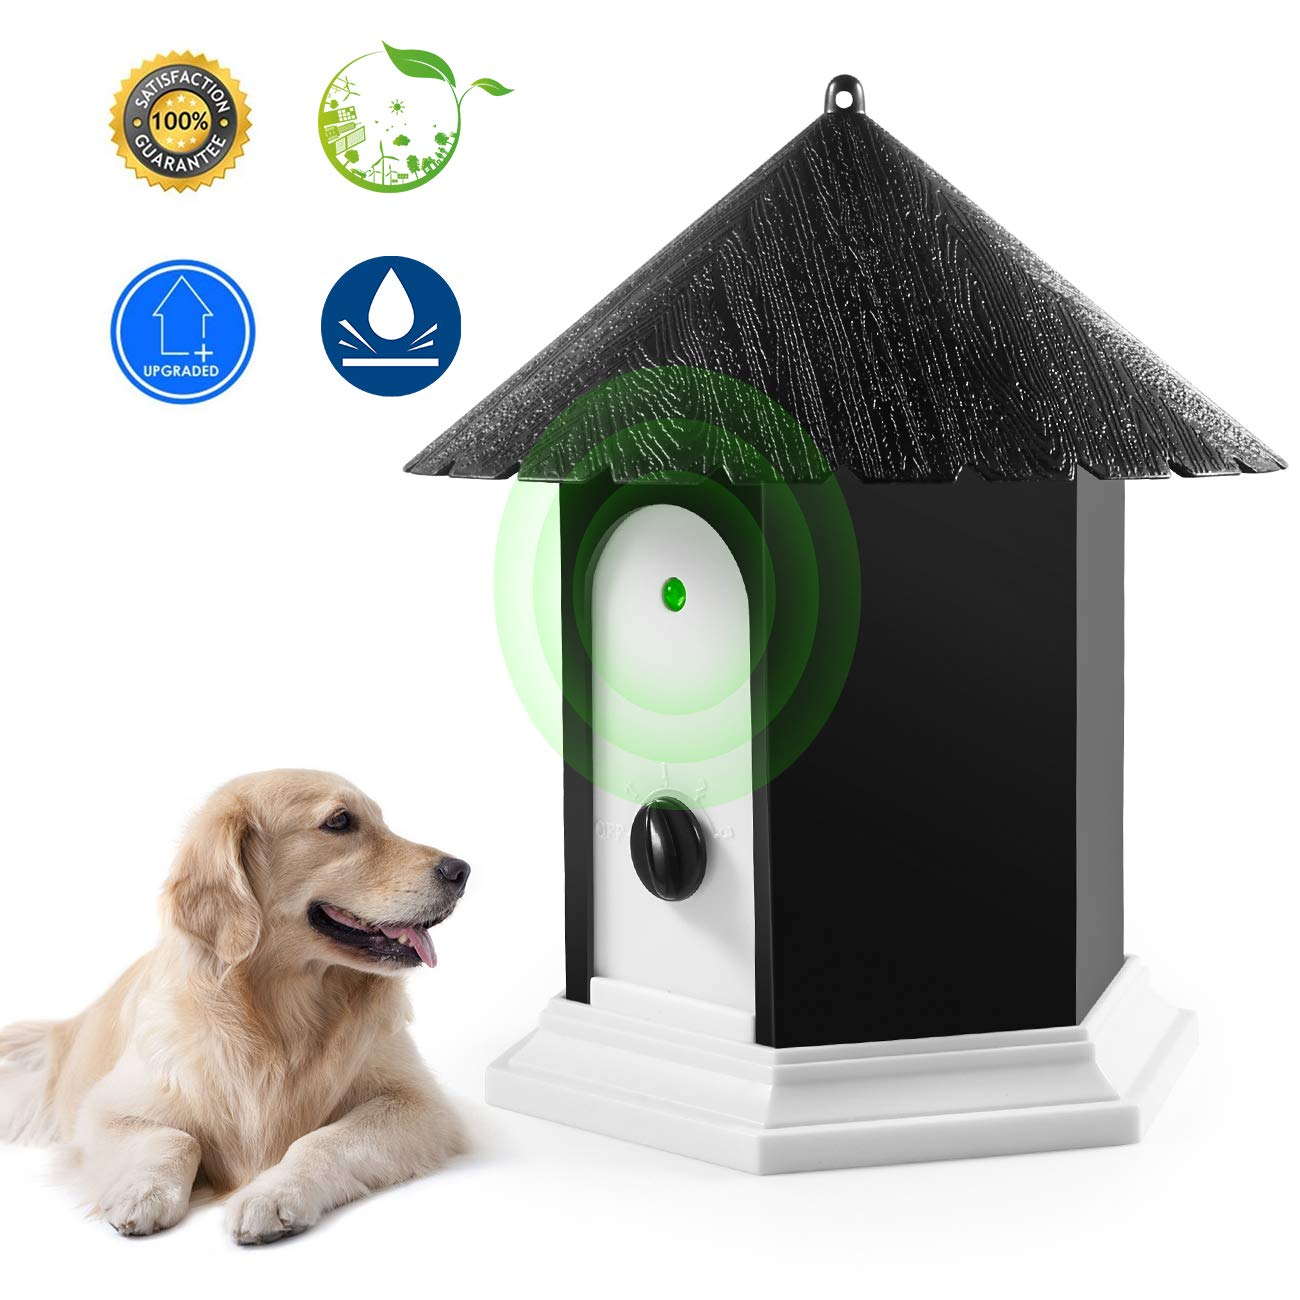 Anti Barking Device, Waterproof Indoor Outdoor Bark Control Device with Adjustable Ultrasonic Level Control Safe for Small Medium Large Dogs